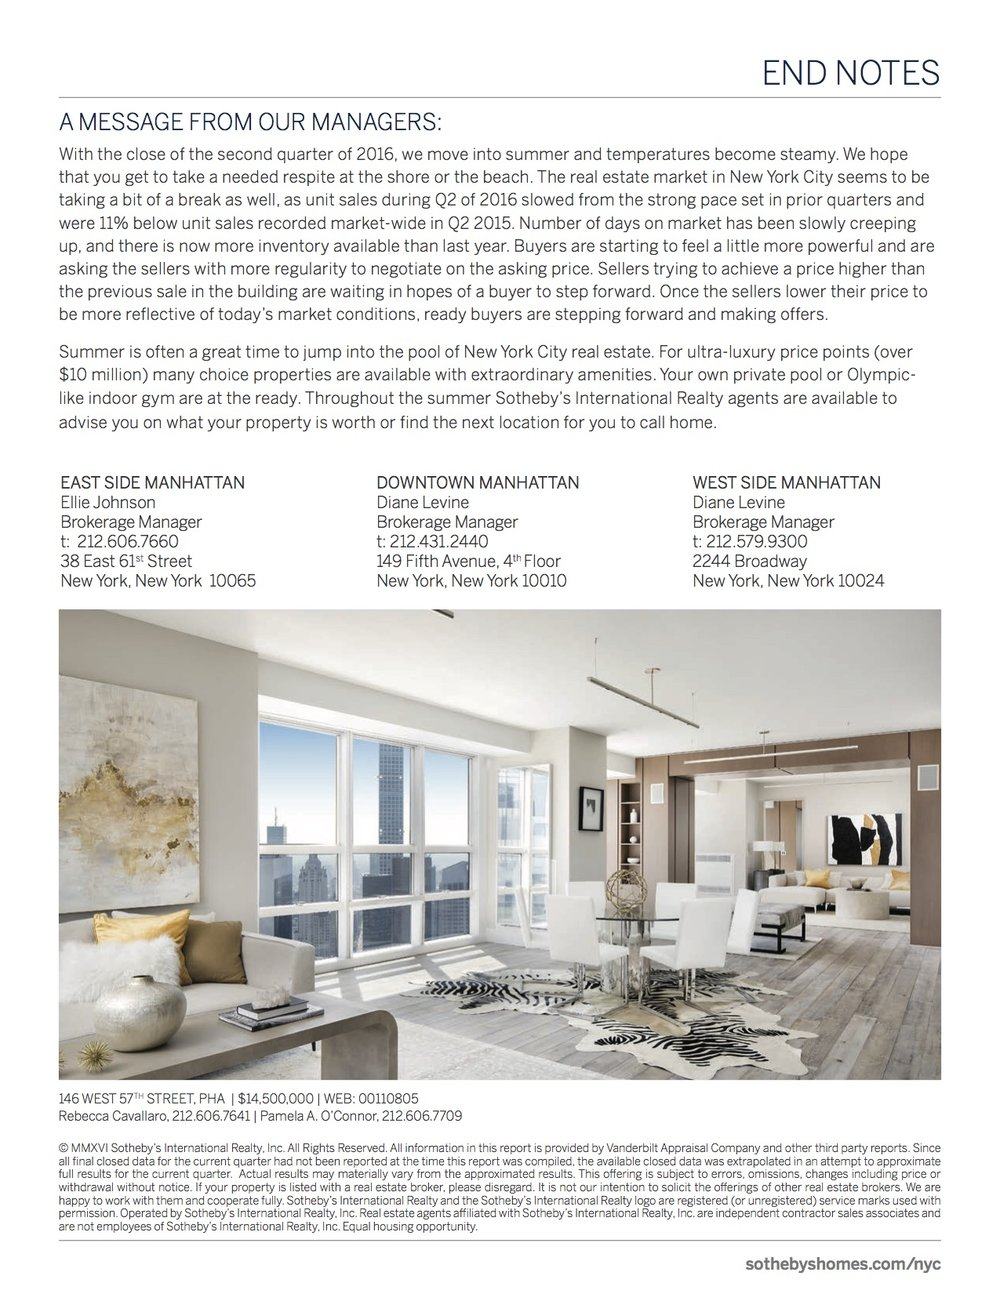 SothebysInternationalRealty_Manhattan_MarketReport_2016_Q2_10.jpg